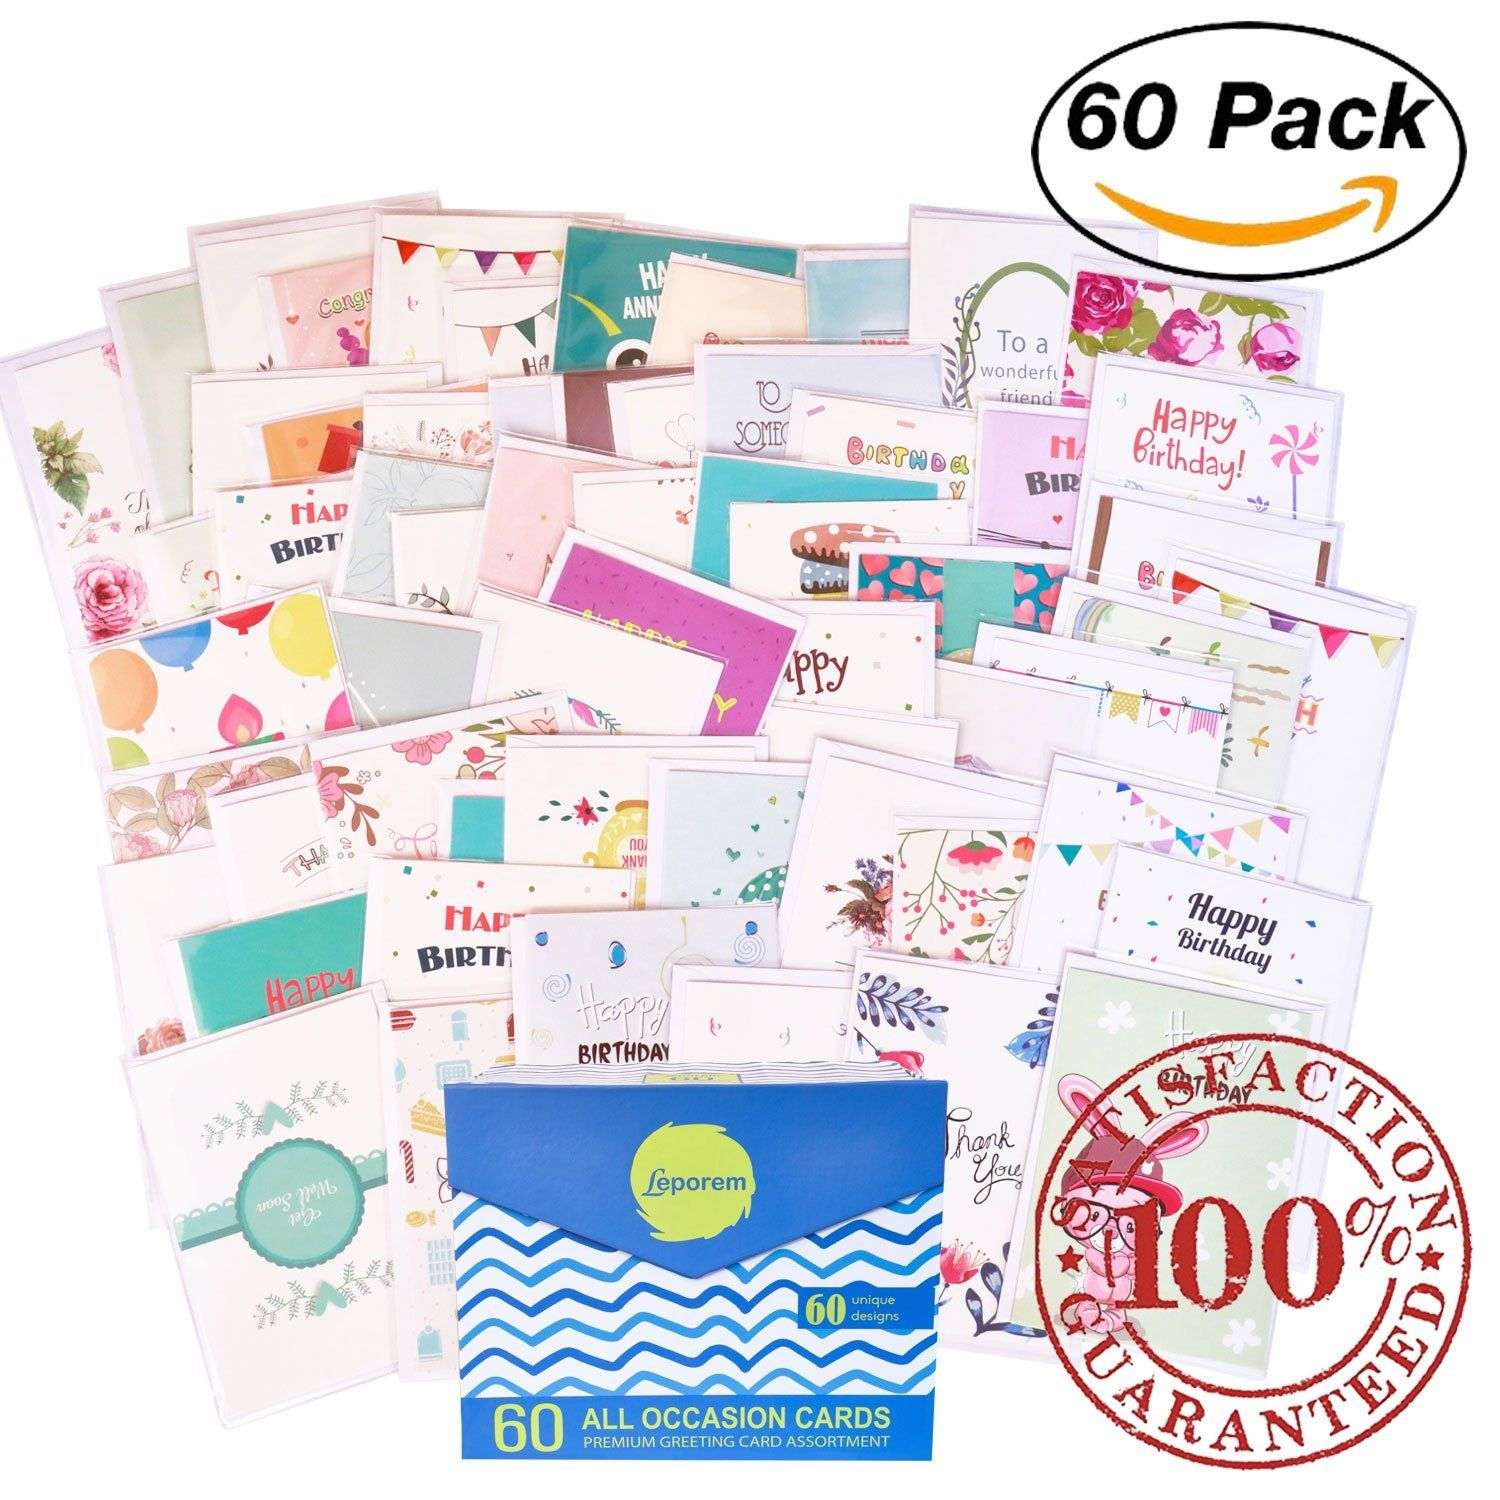 Amazon 60 Pack Assorted All Occasion Greeting Cards With A Magnetic Organizer 5 X 7 Inches Happy Birthday Get Well Thank You Card Assortment